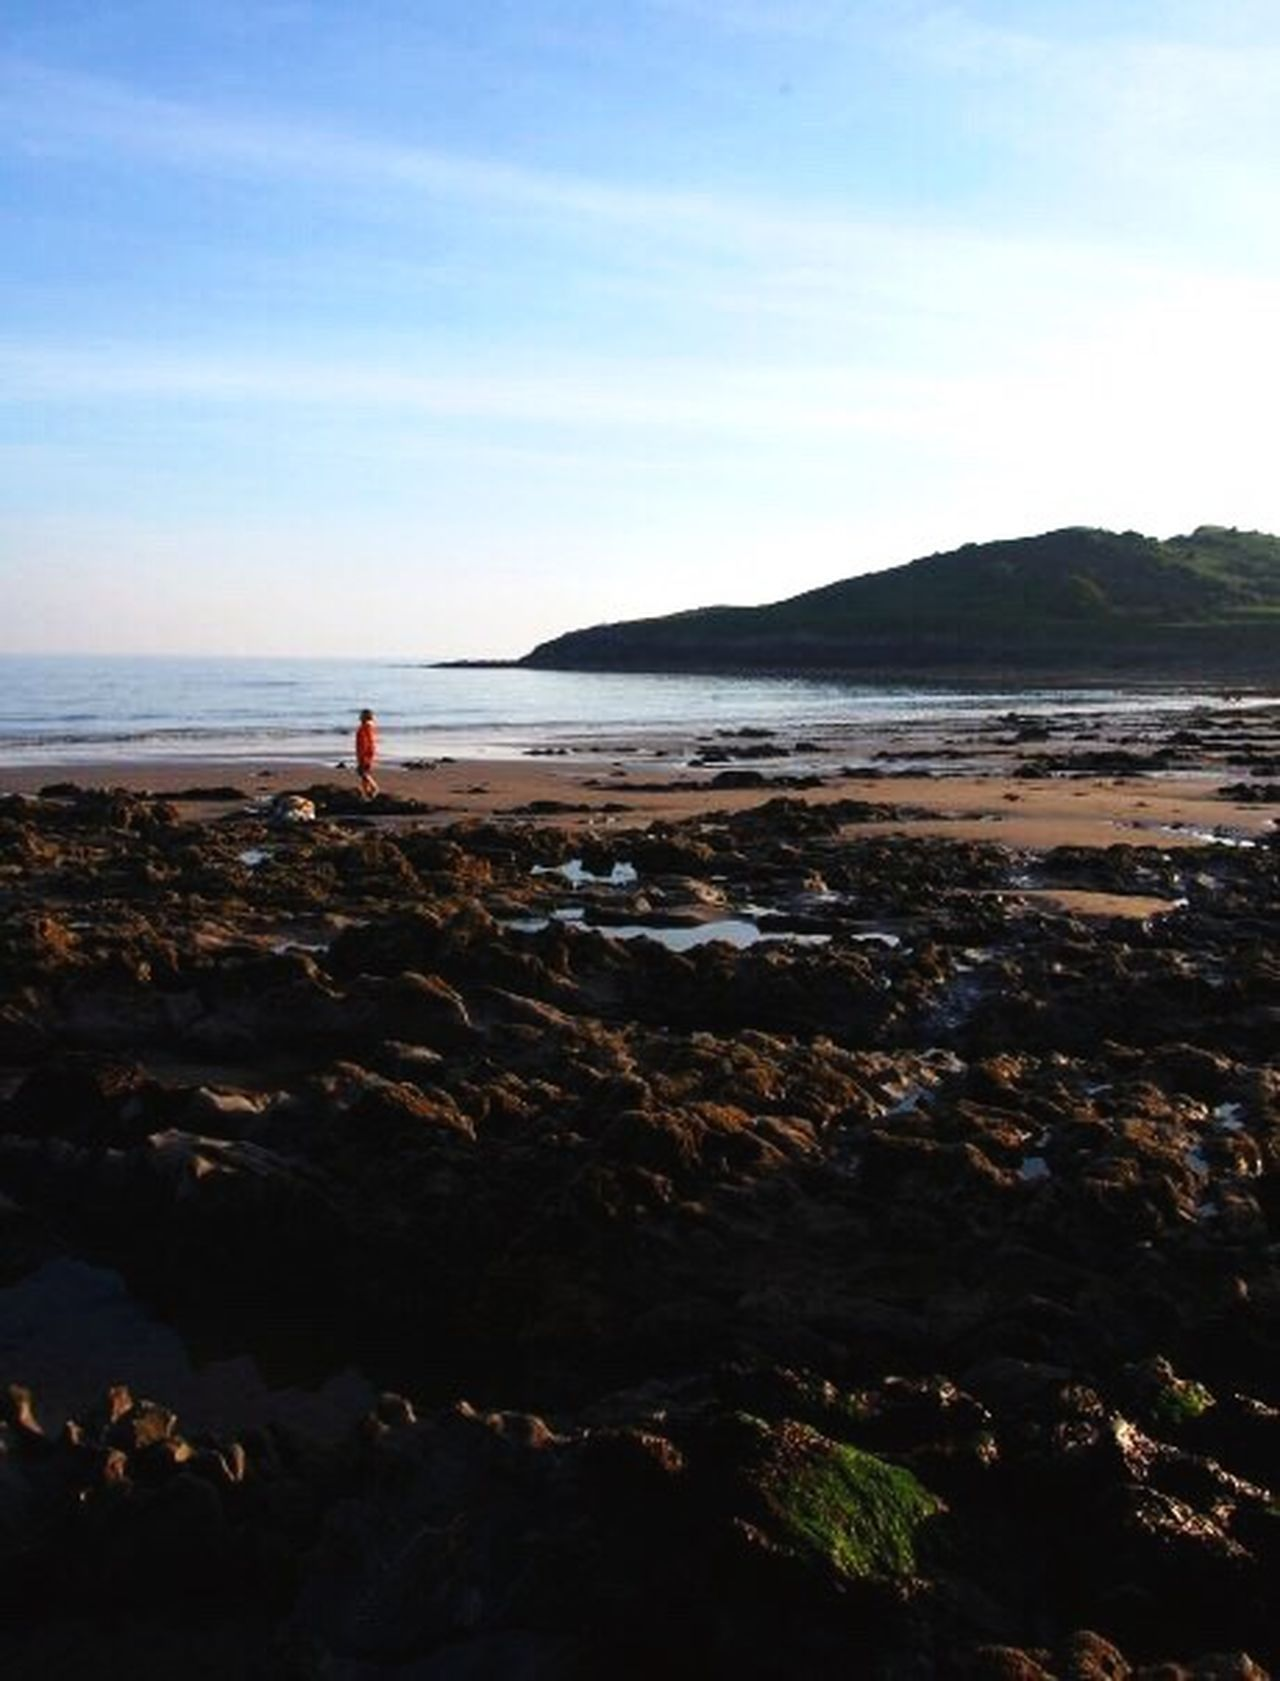 Beach Sea Water Tranquil Scene Beauty In Nature Vacations Shore Tranquility Coastline Sky The Mumbles Wales Mumbles